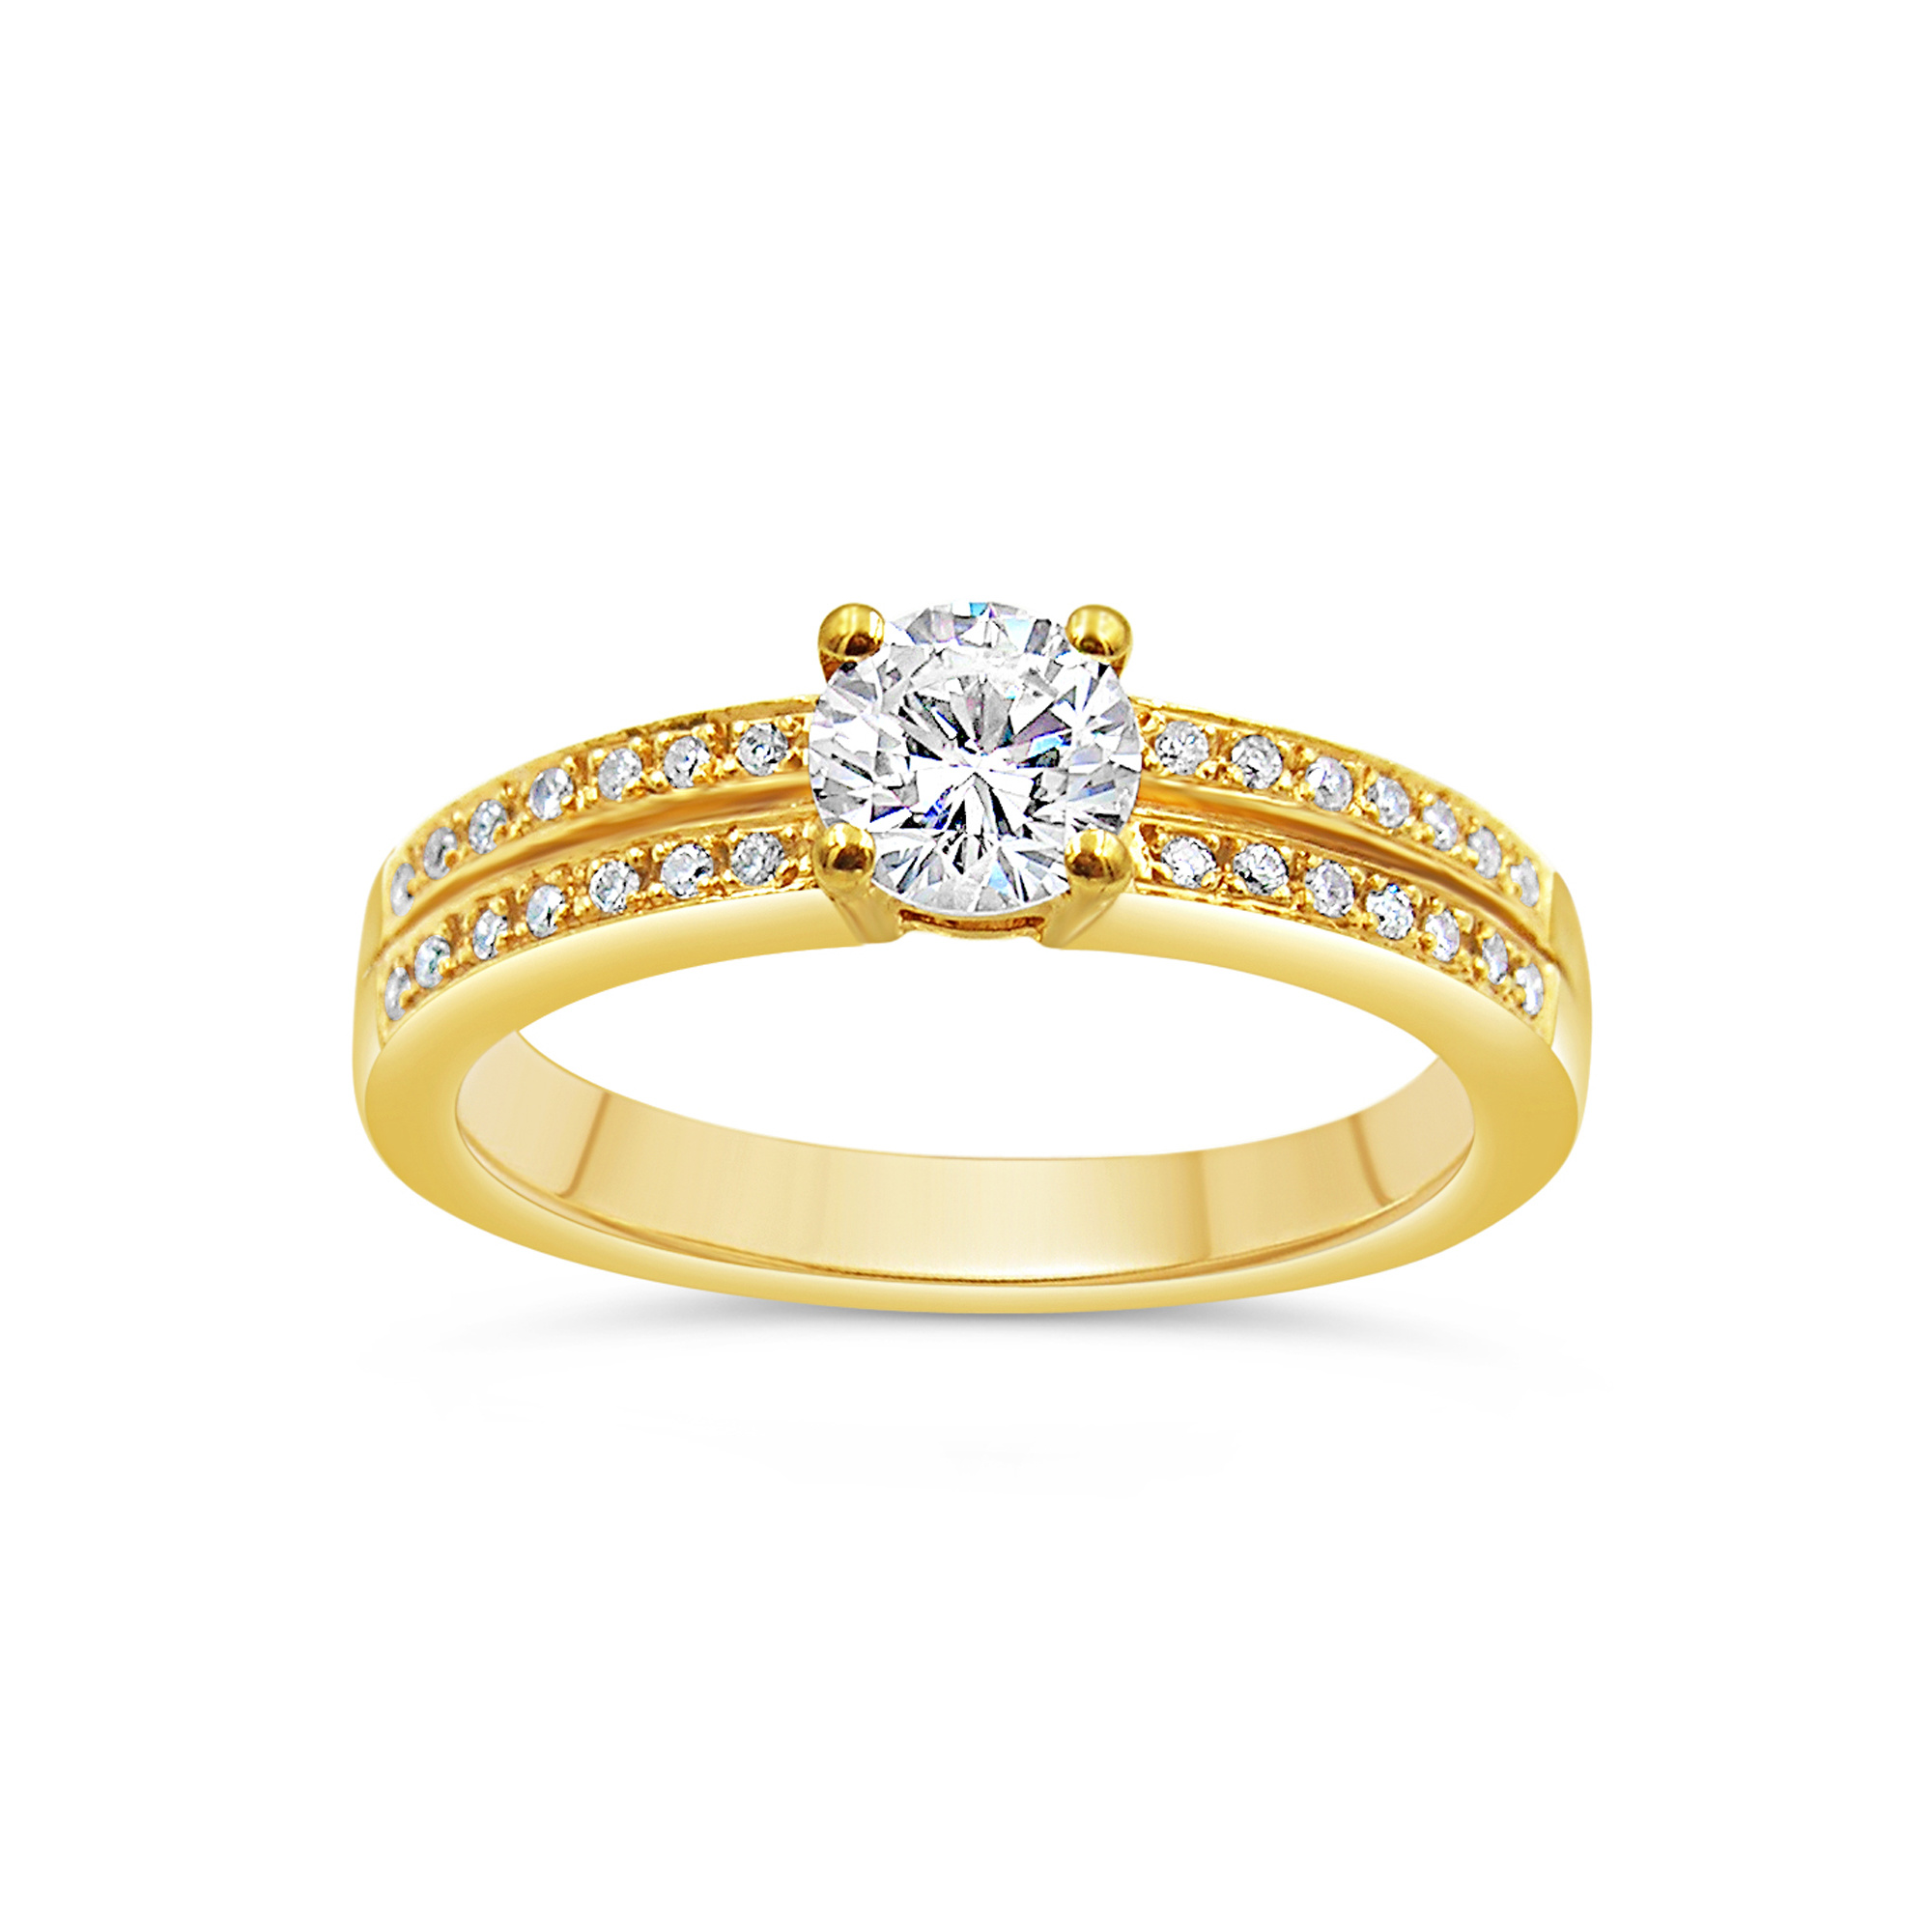 18kt yellow gold engagement ring with 0.64 ct diamonds